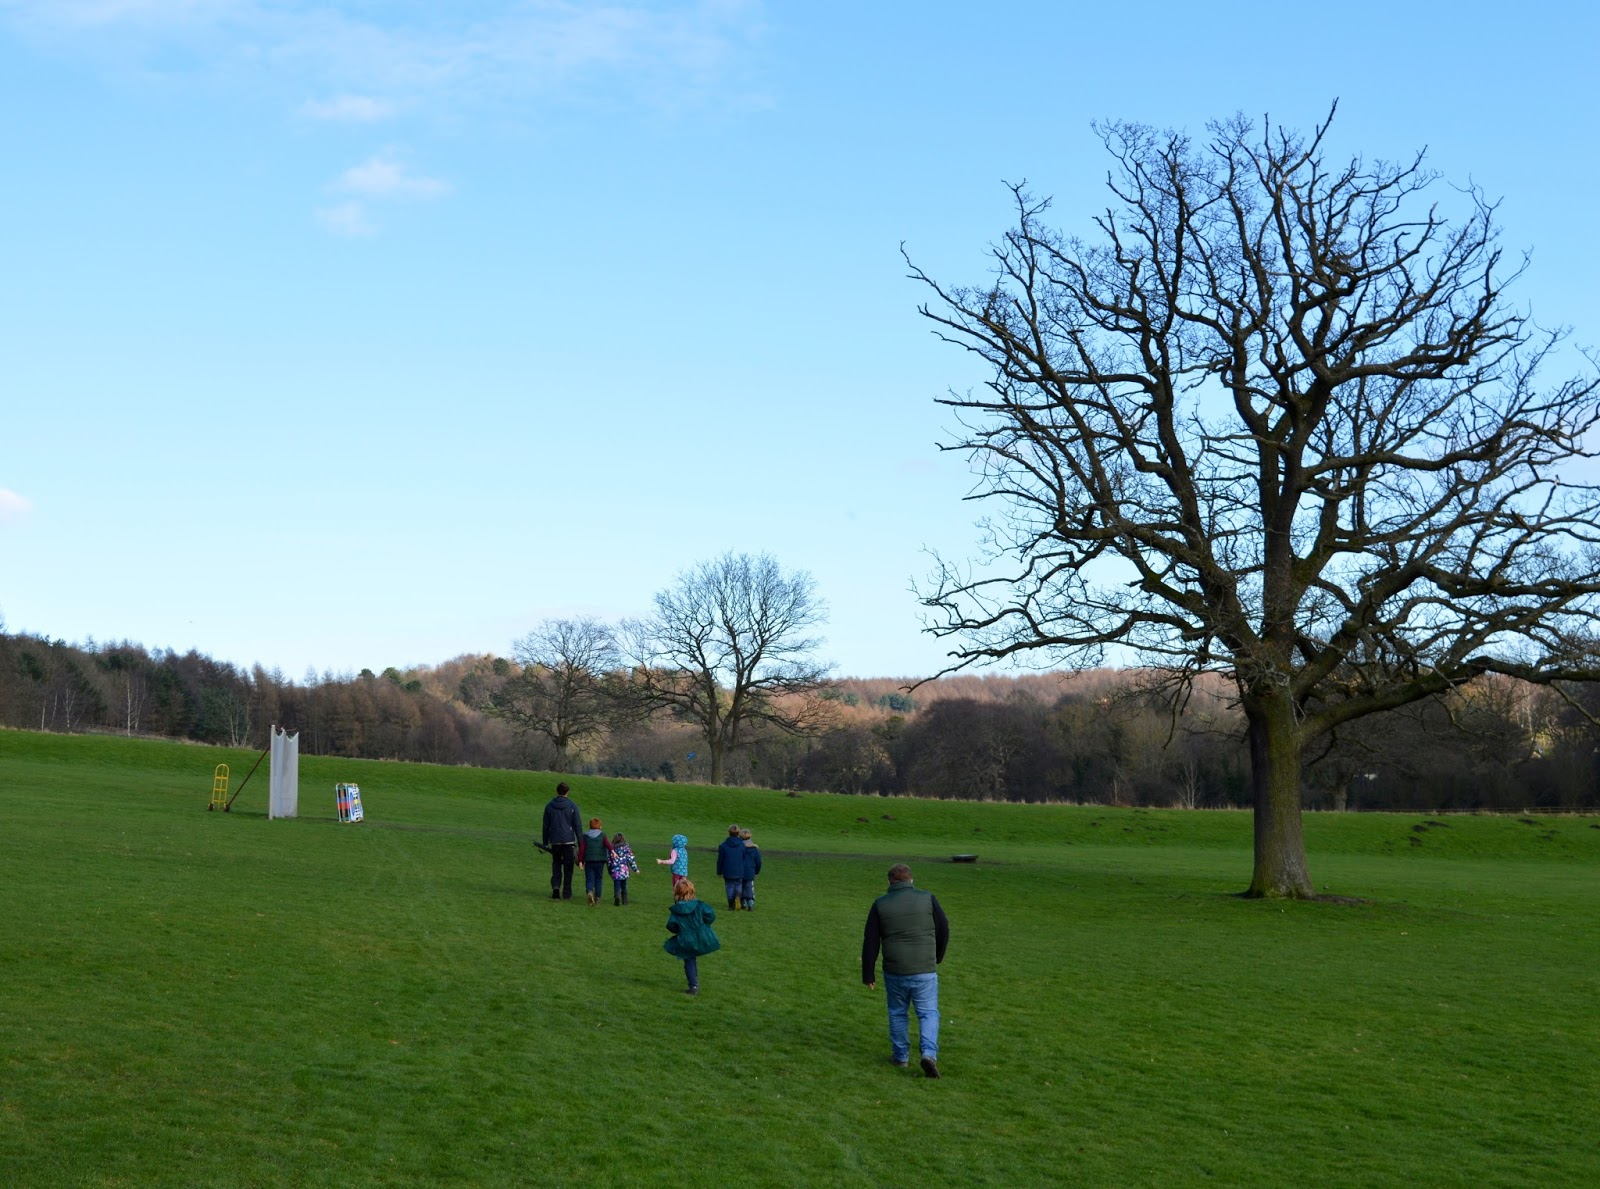 Beamish Wild   School Holiday Club & Activities in County Durham   North East England - archery field